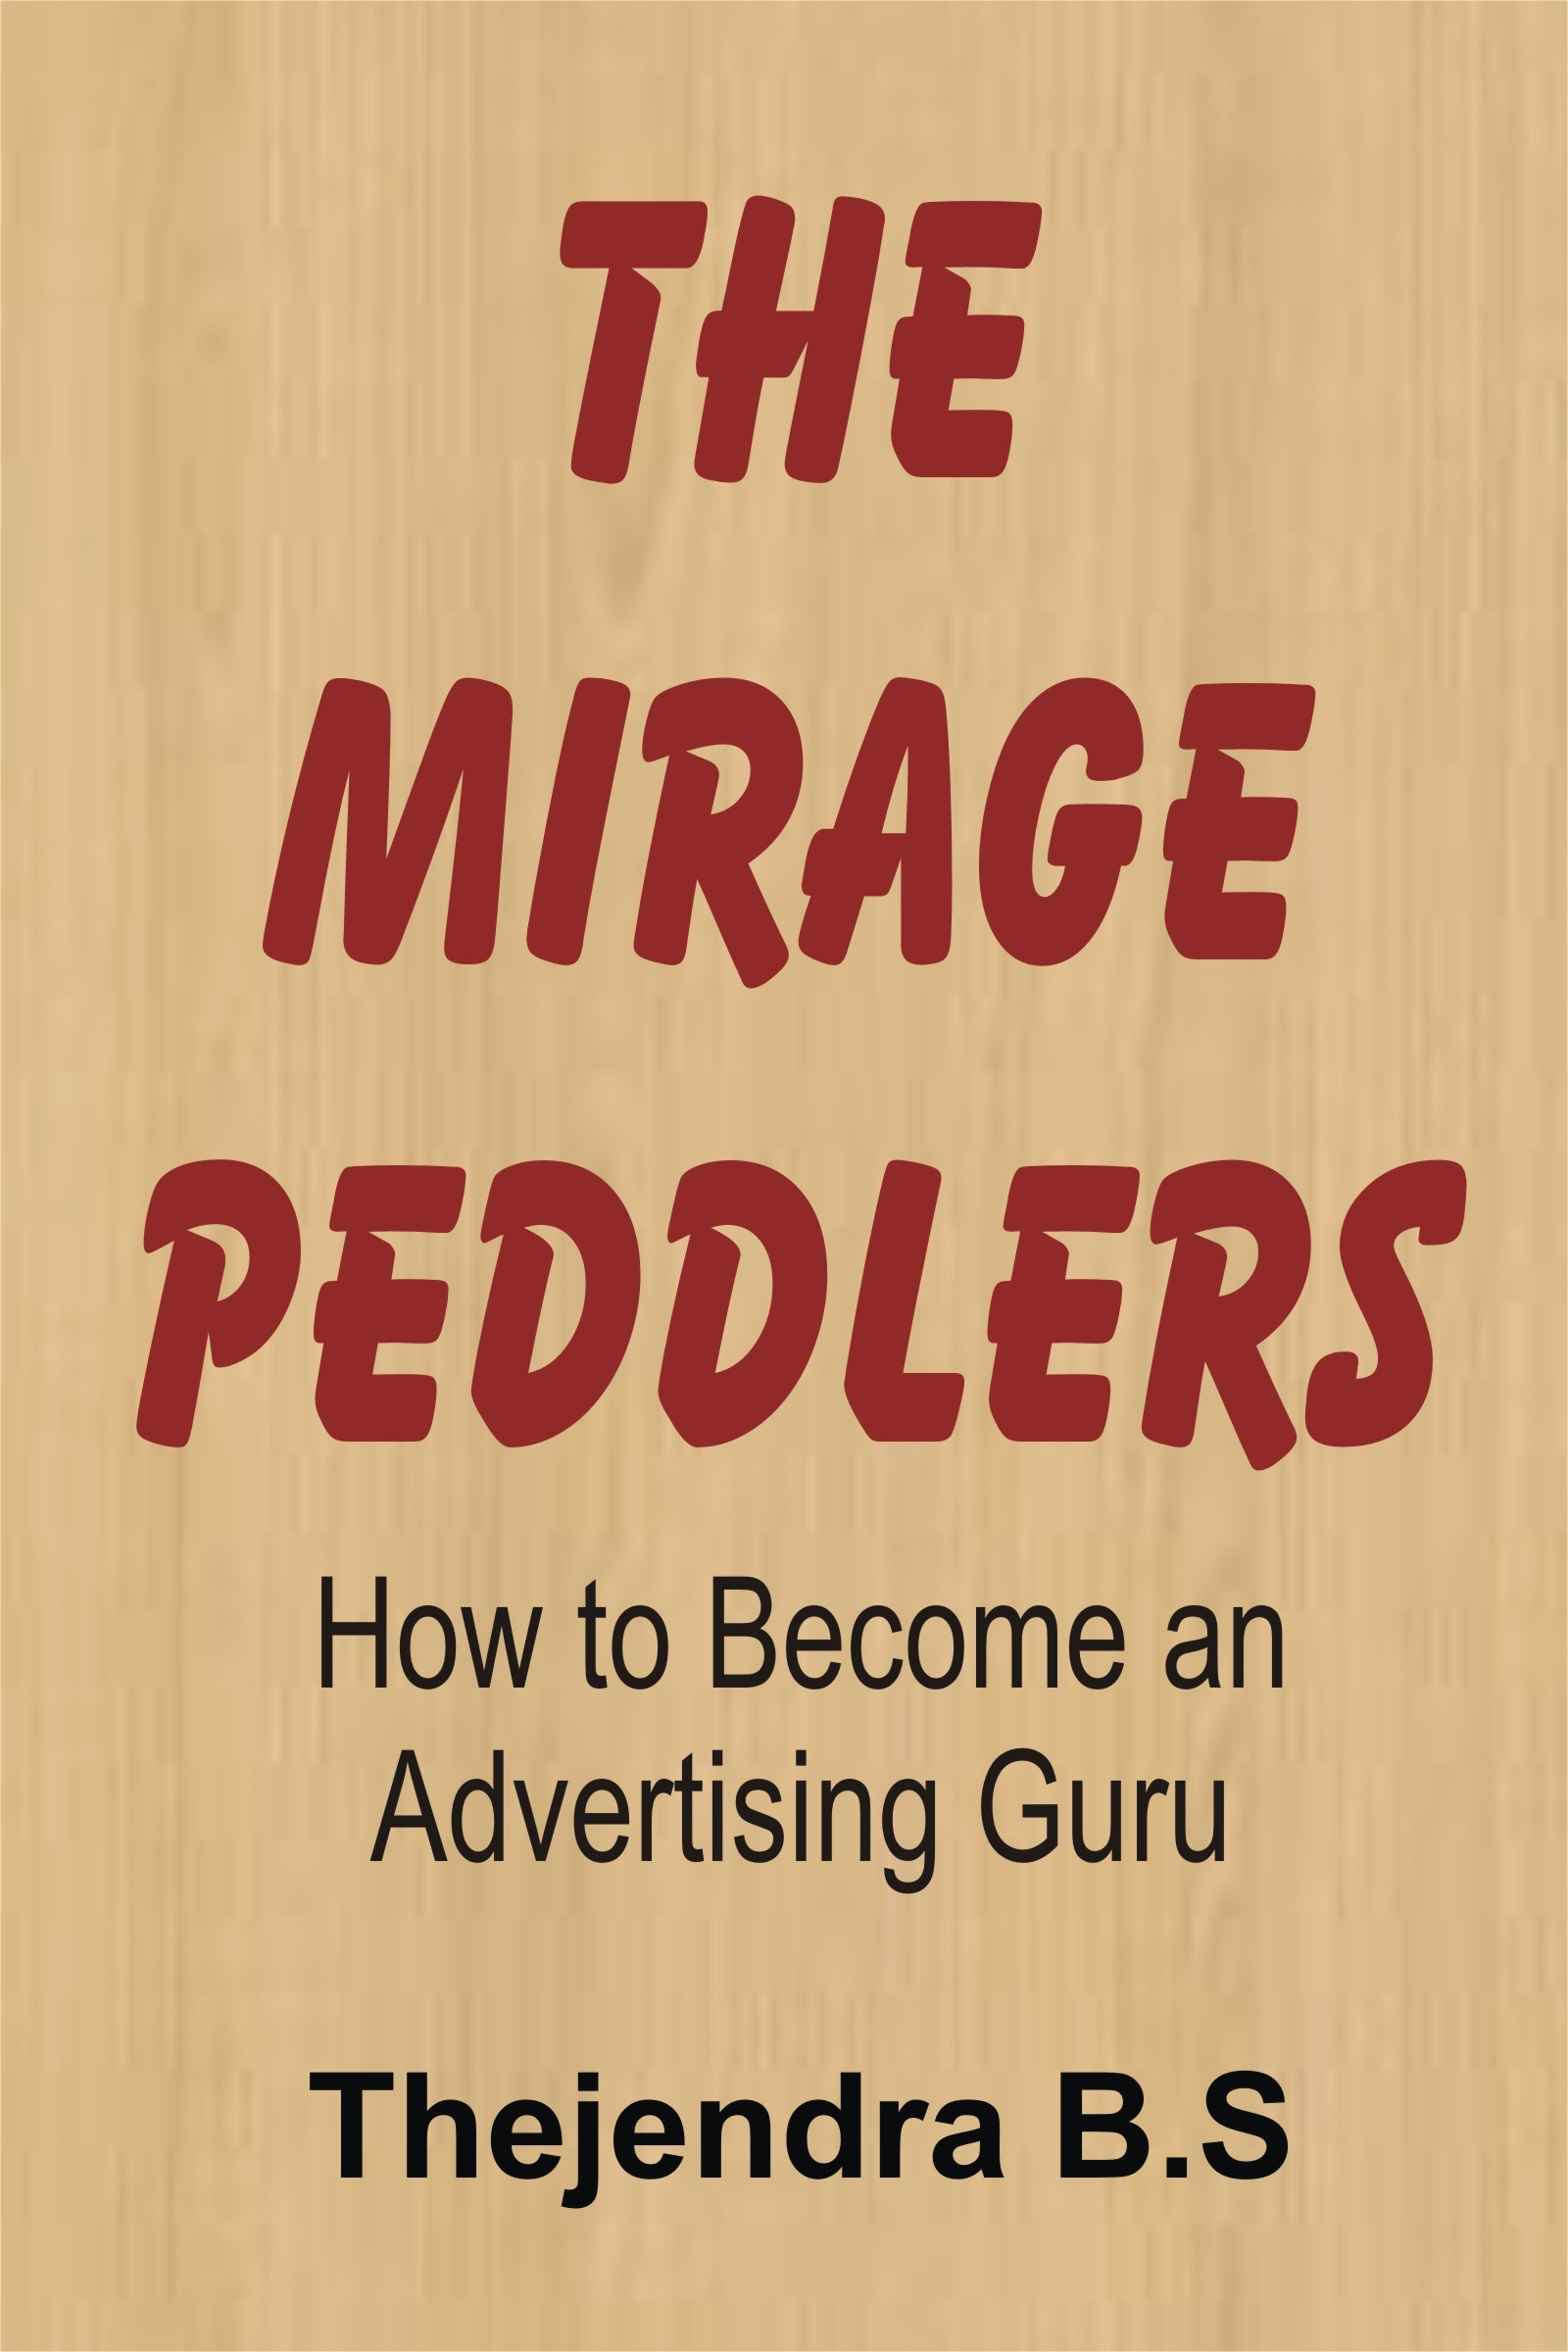 The Mirage Peddlers: How to Become an Advertising Guru